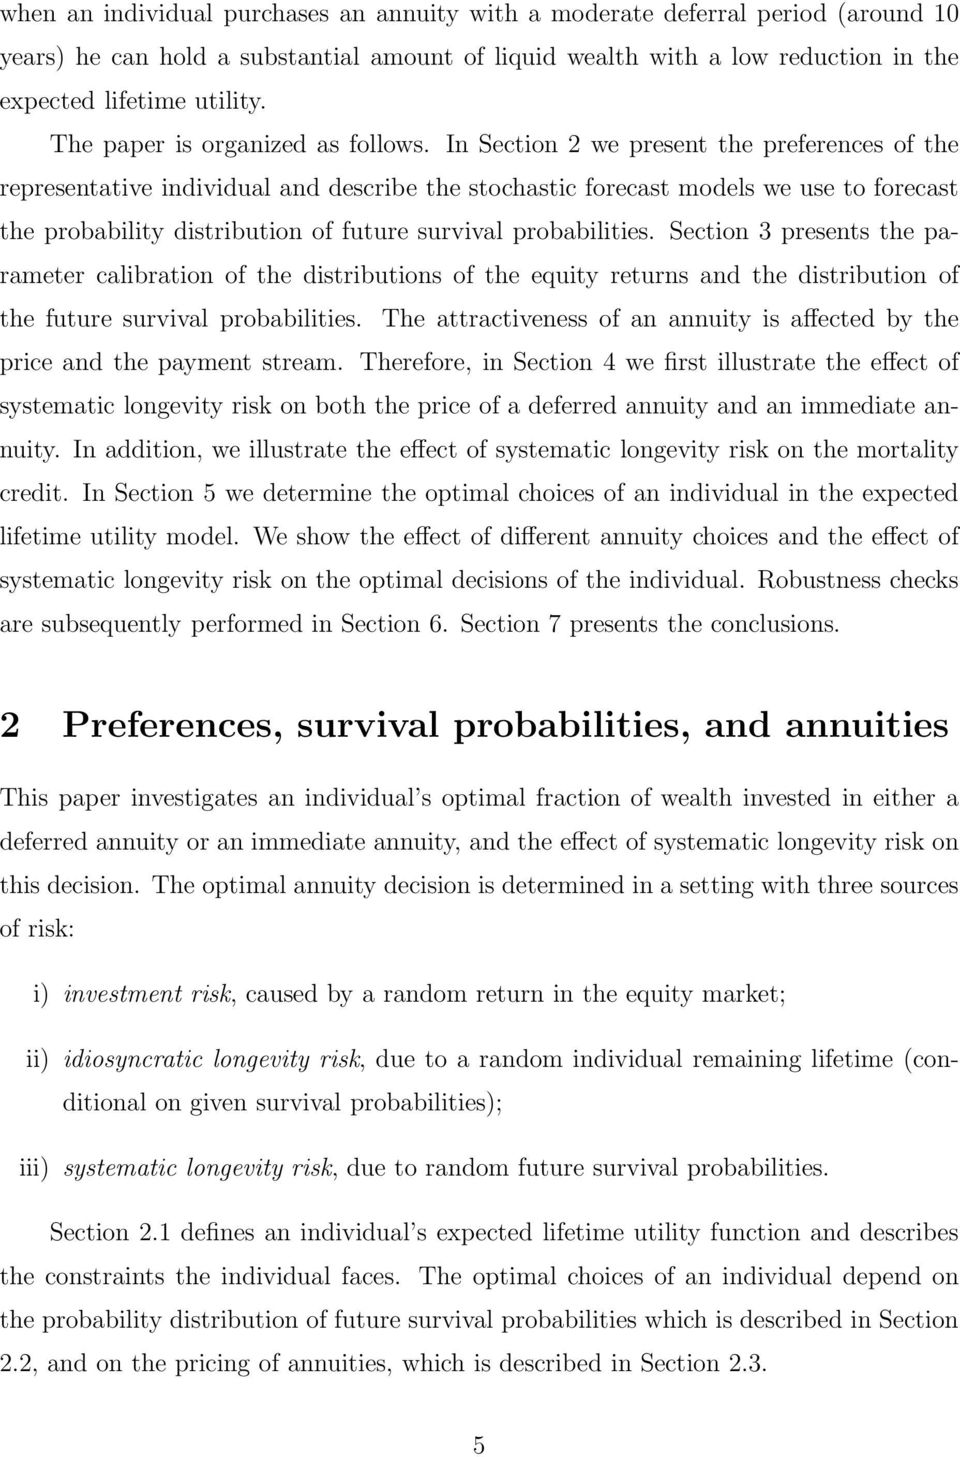 In Secion 2 we presen he preferences of he represenaive individual and describe he sochasic forecas models we use o forecas he probabiliy disribuion of fuure survival probabiliies.